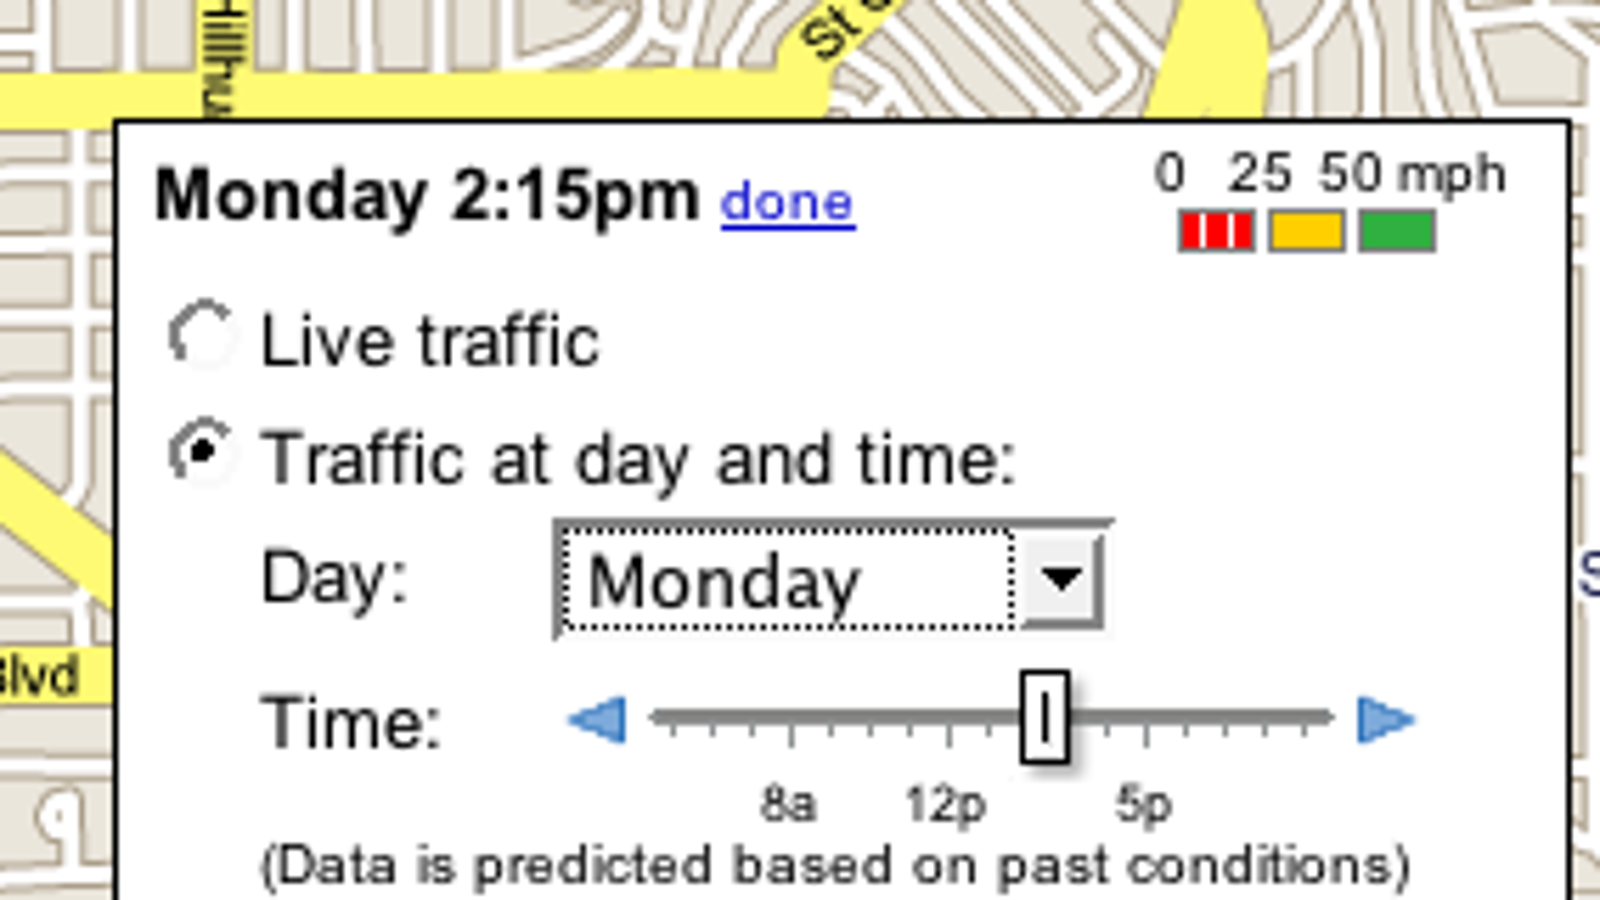 Dallas Real Time Traffic Map.Google Maps Predicts Traffic Conditions For Your Travel Time